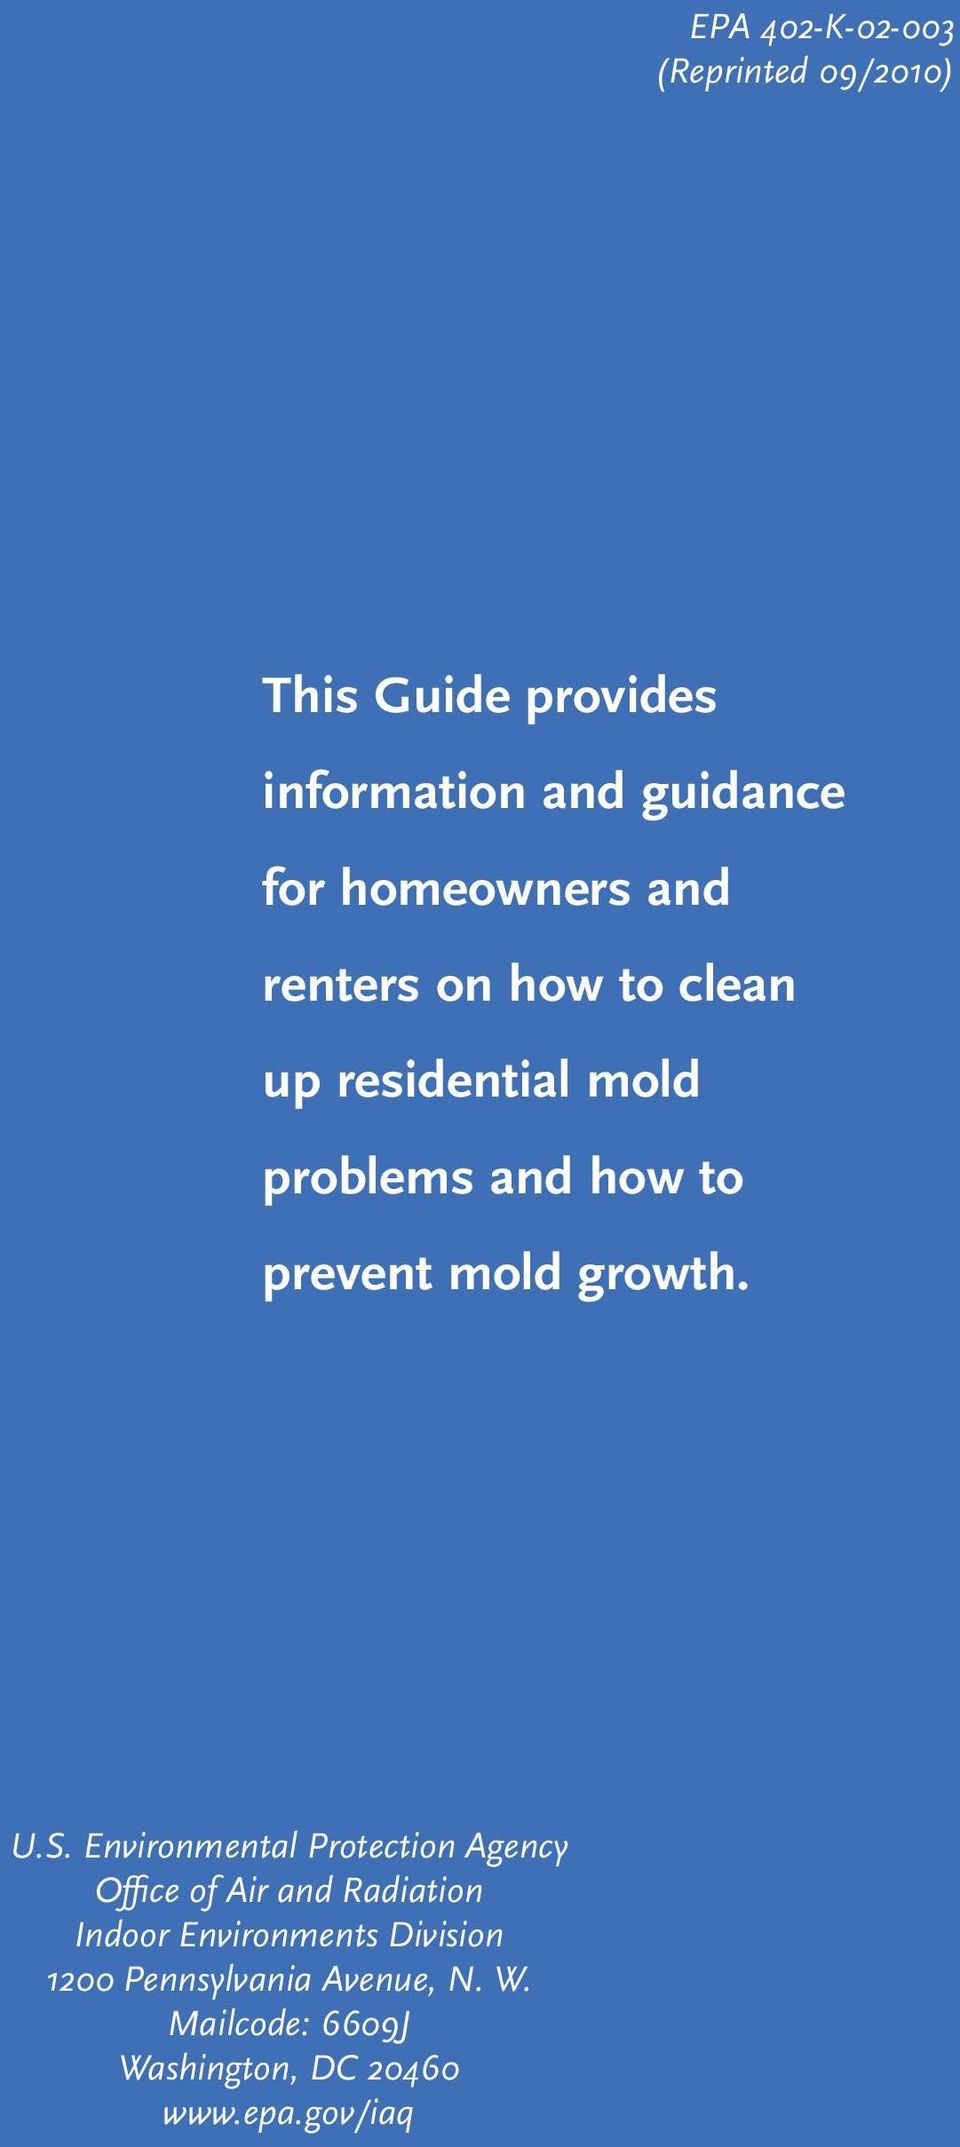 mold growth. U.S.